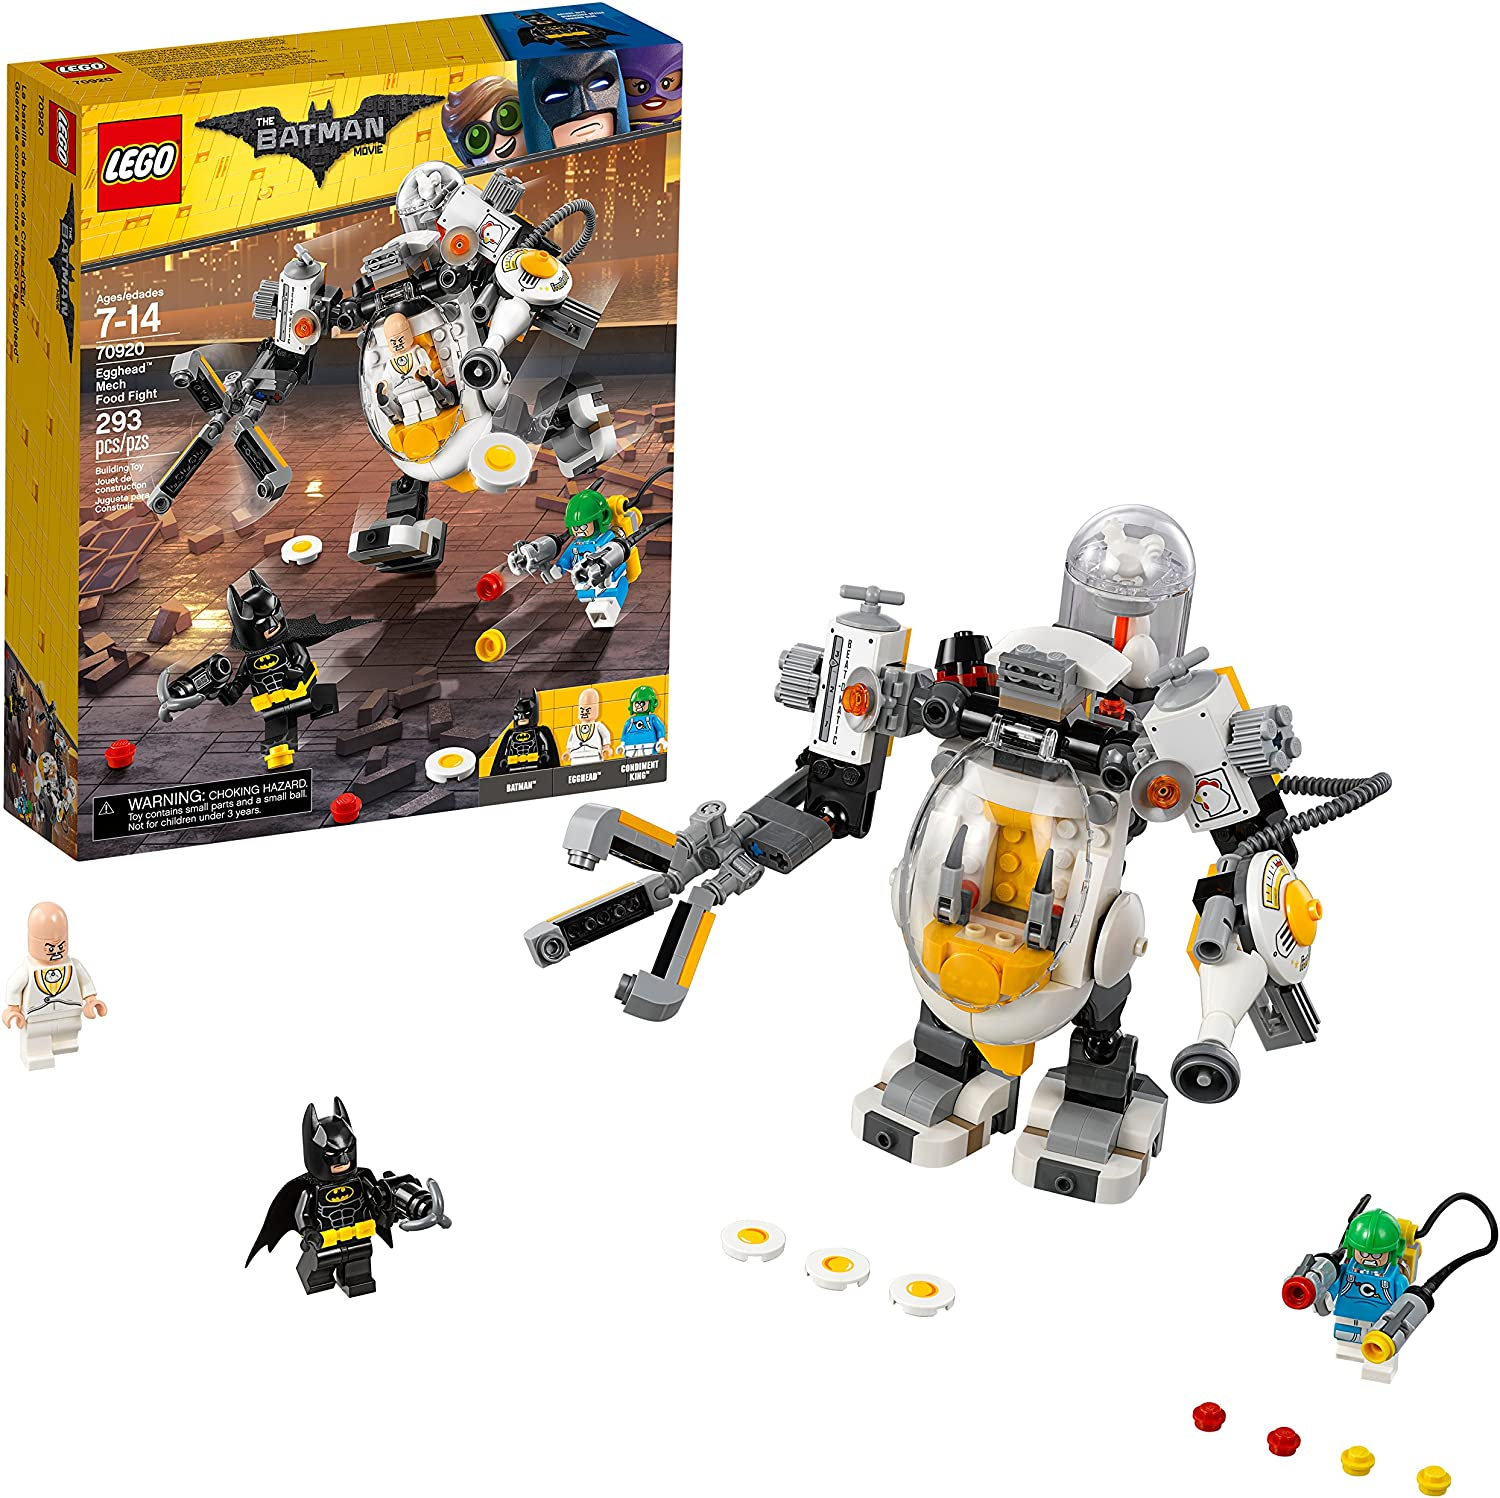 LEGO BATMAN MOVIE DC Egghead Mech Food Fight 70920 Building Kit (293 Piece)